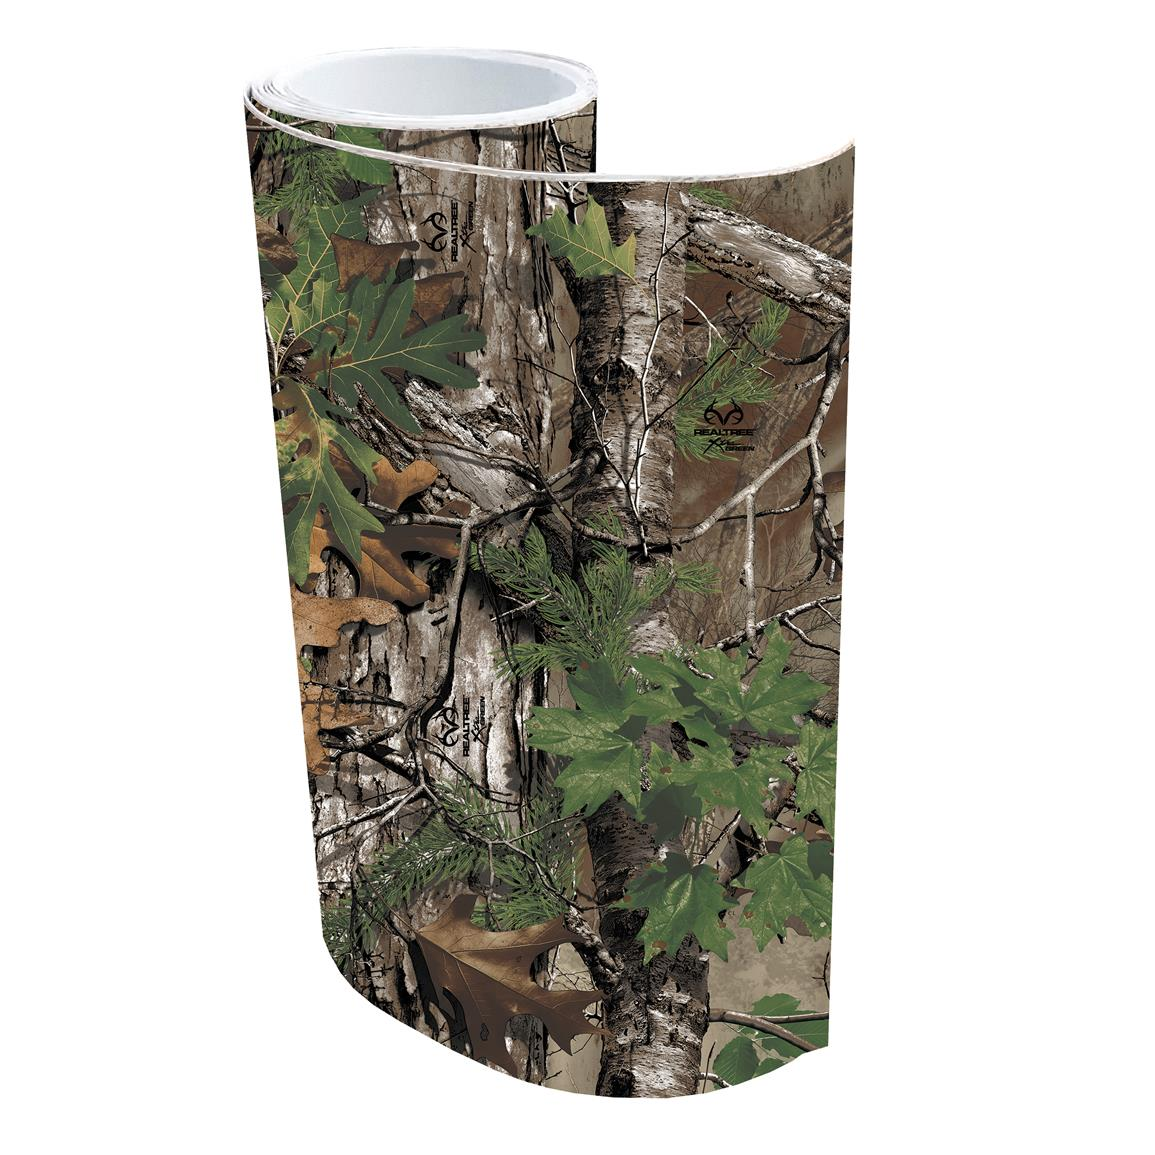 Realtree Camo Graphics Adhesive Realtree Camo Accessory Kit, Realtree Xtra Green